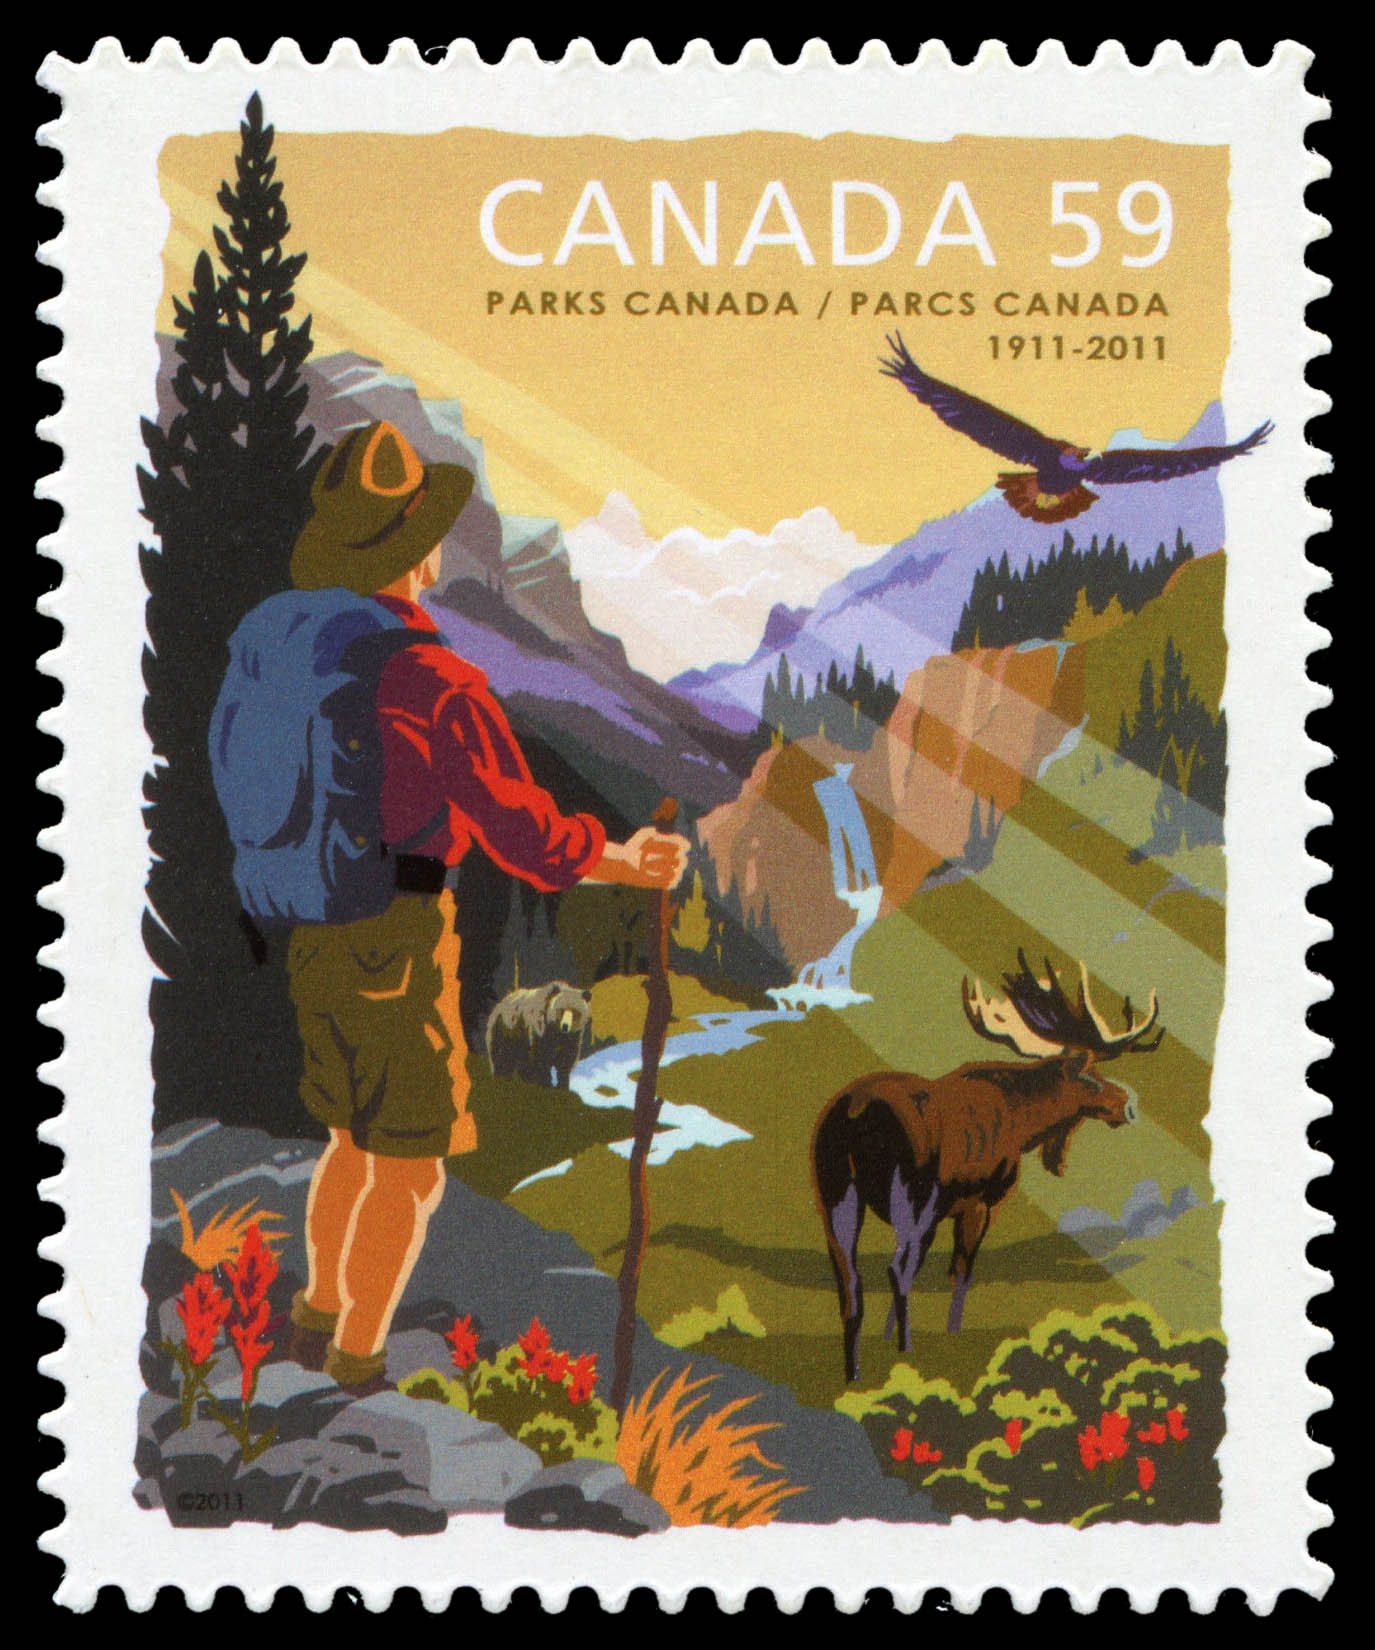 Parks Canada, 100th Anniversary Canada Postage Stamp